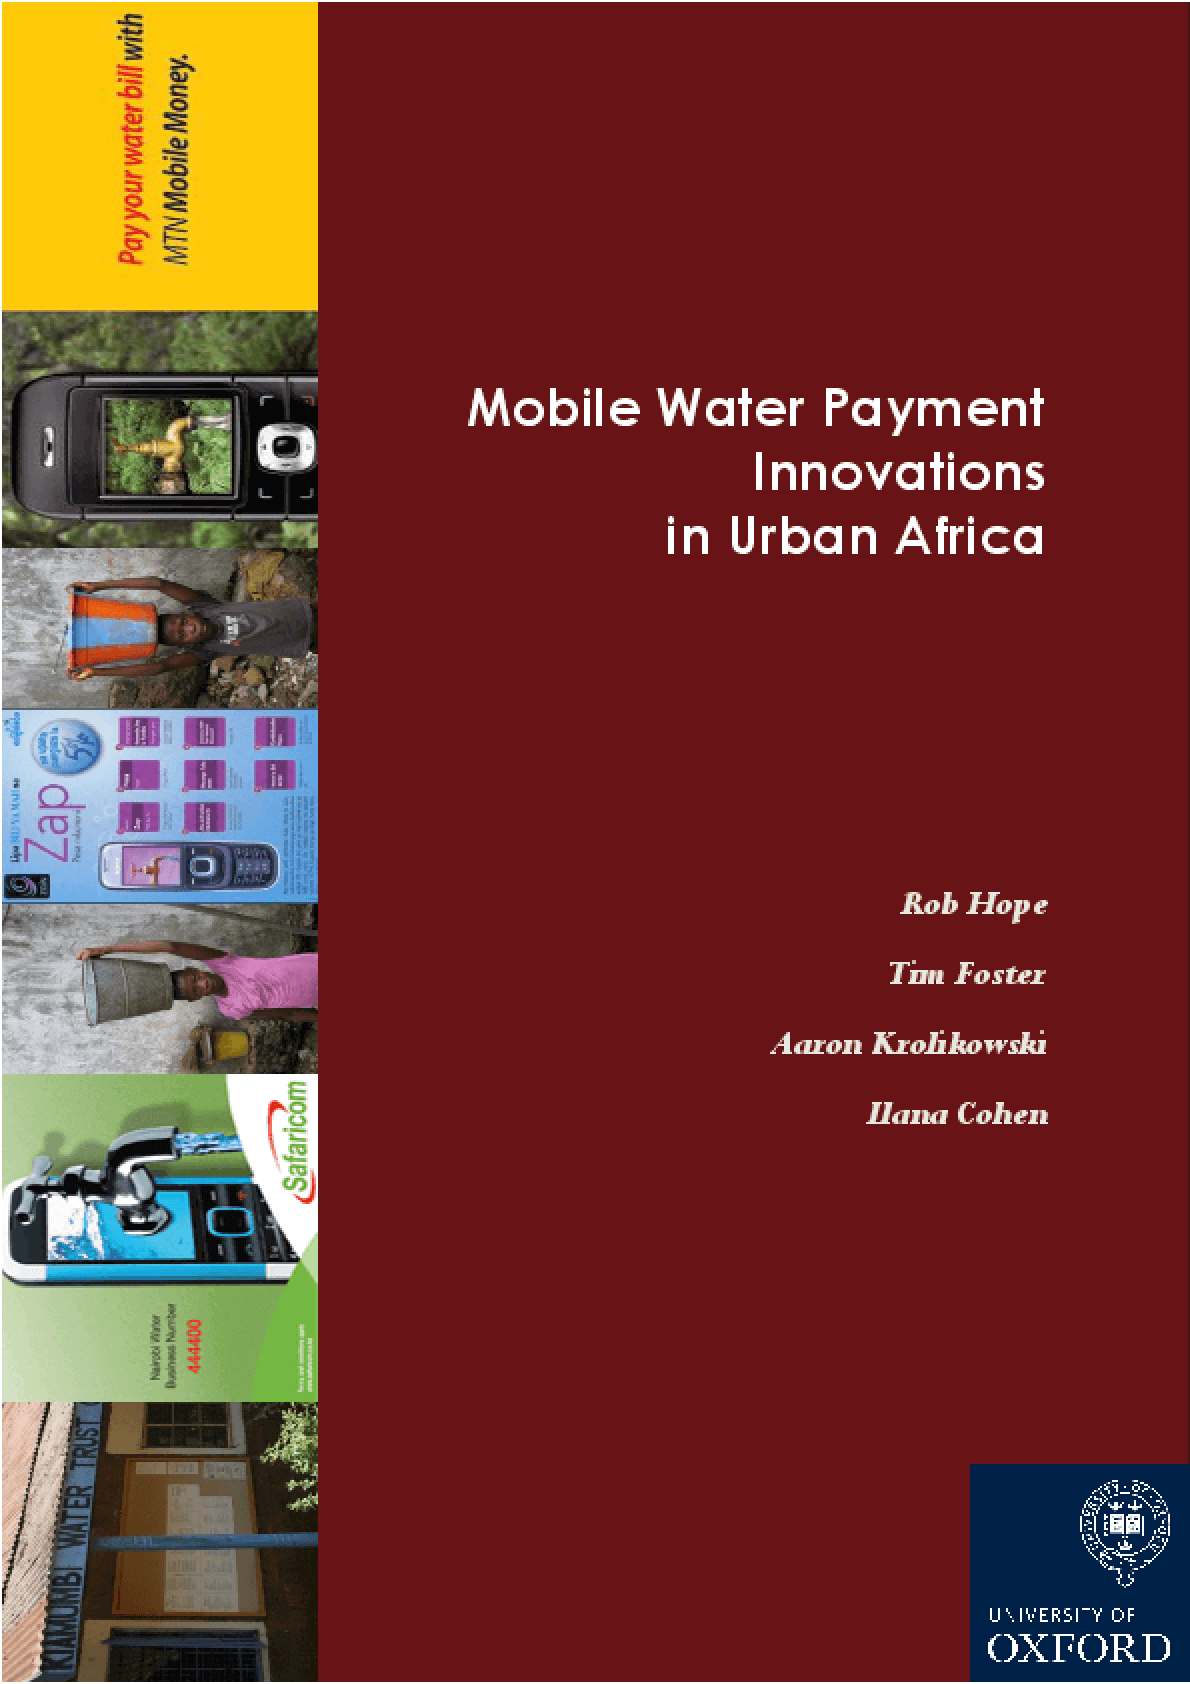 Mobile Water Payment Innovations in Urban Africa